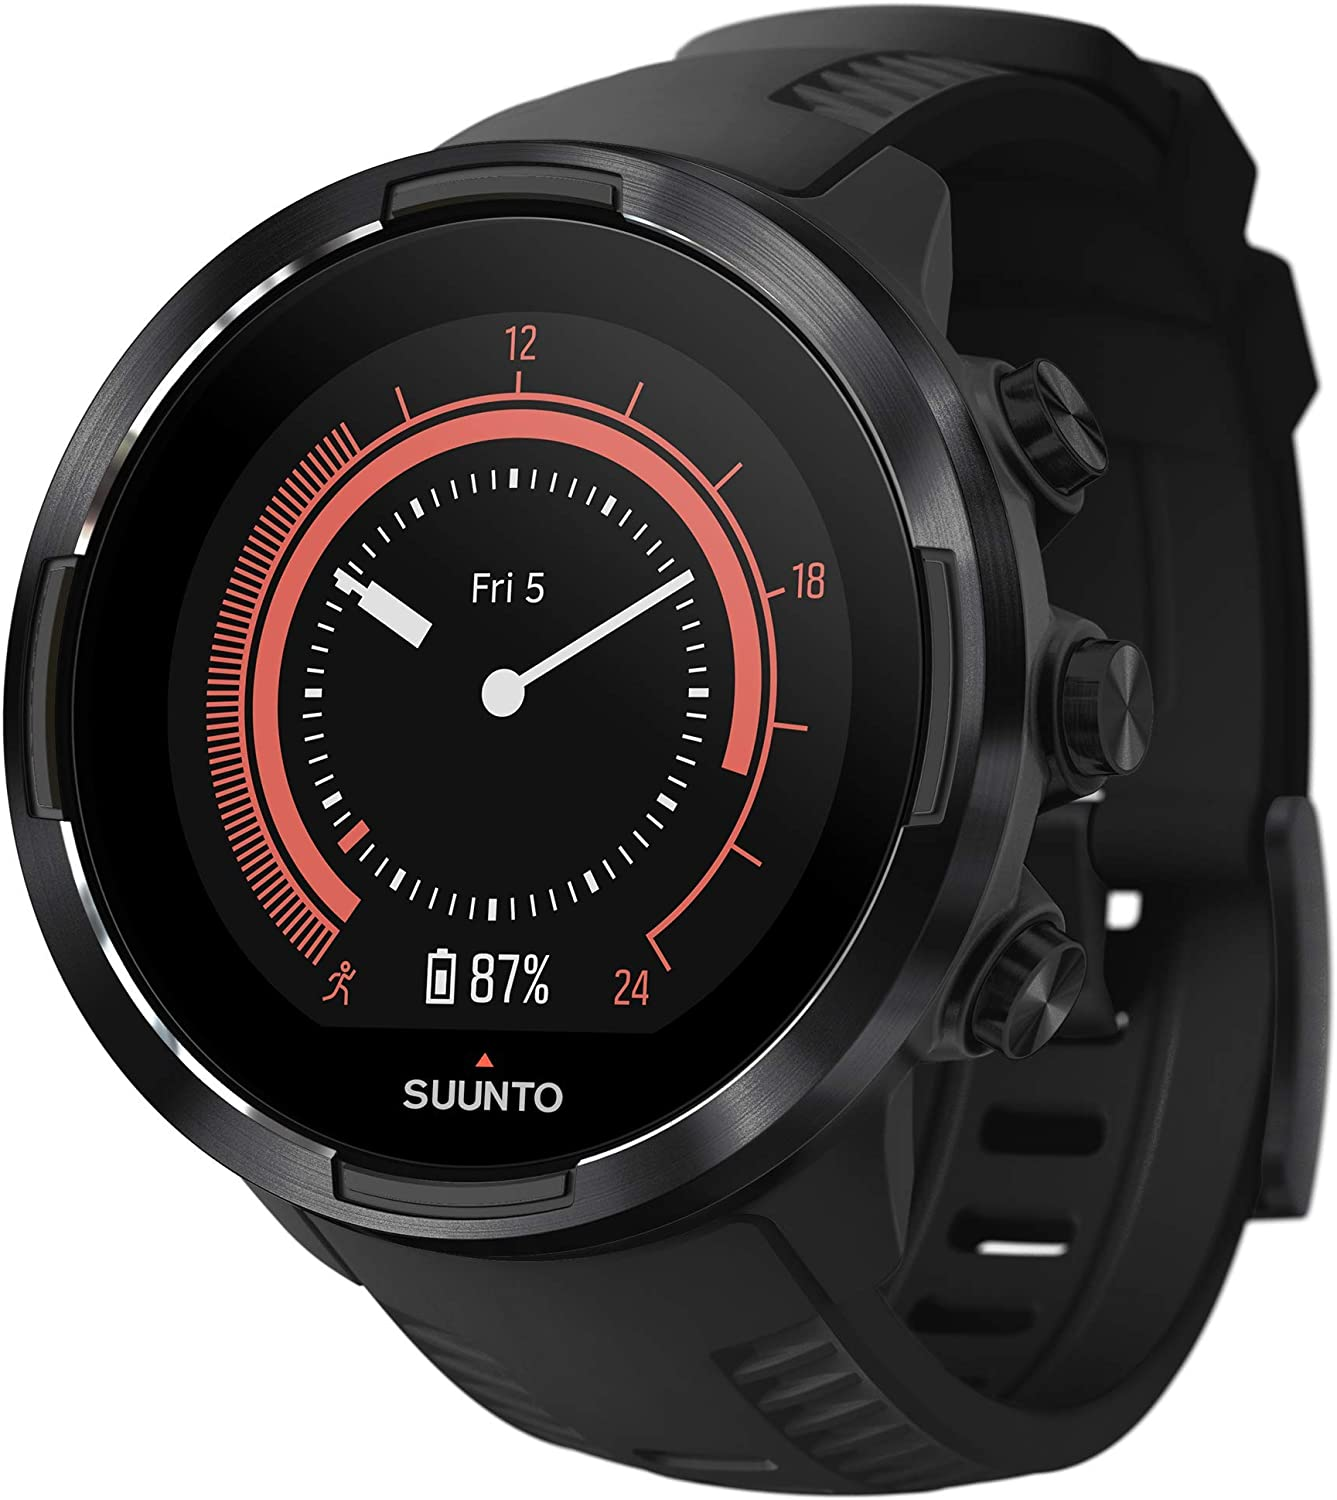 Second best fitness watch to buy